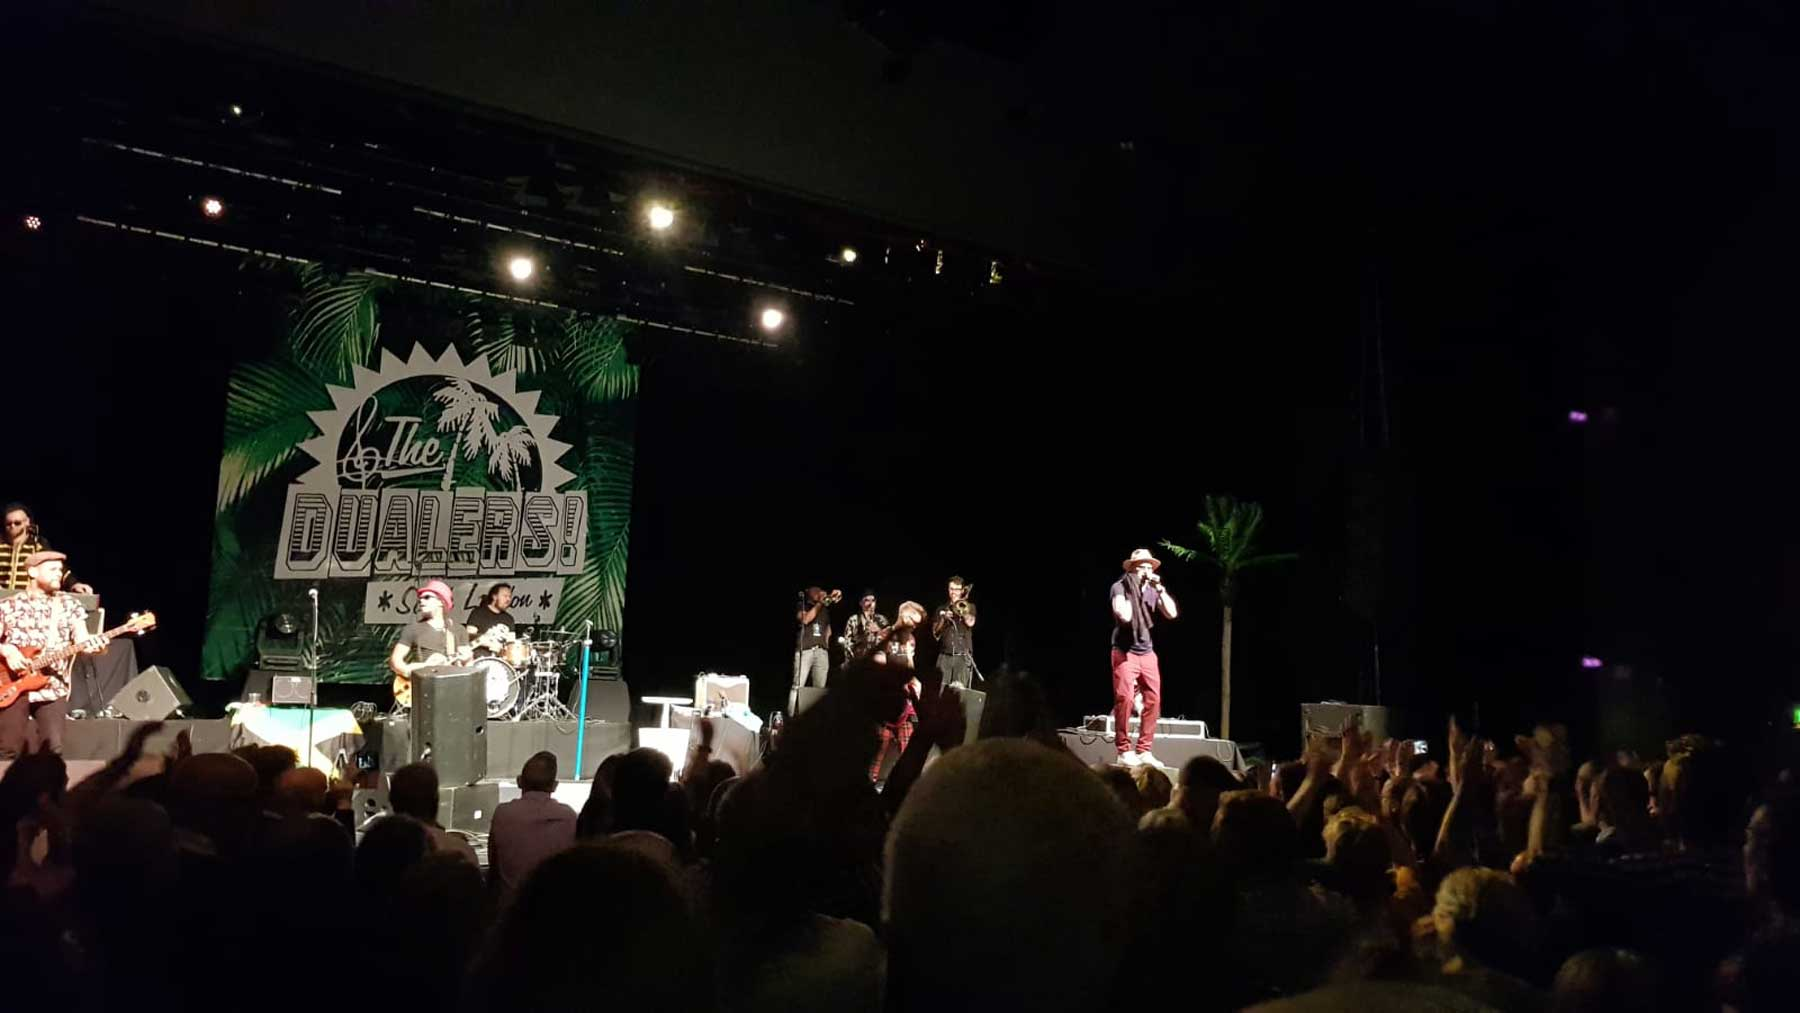 ska band on stage with crowd dancing on a saturday night